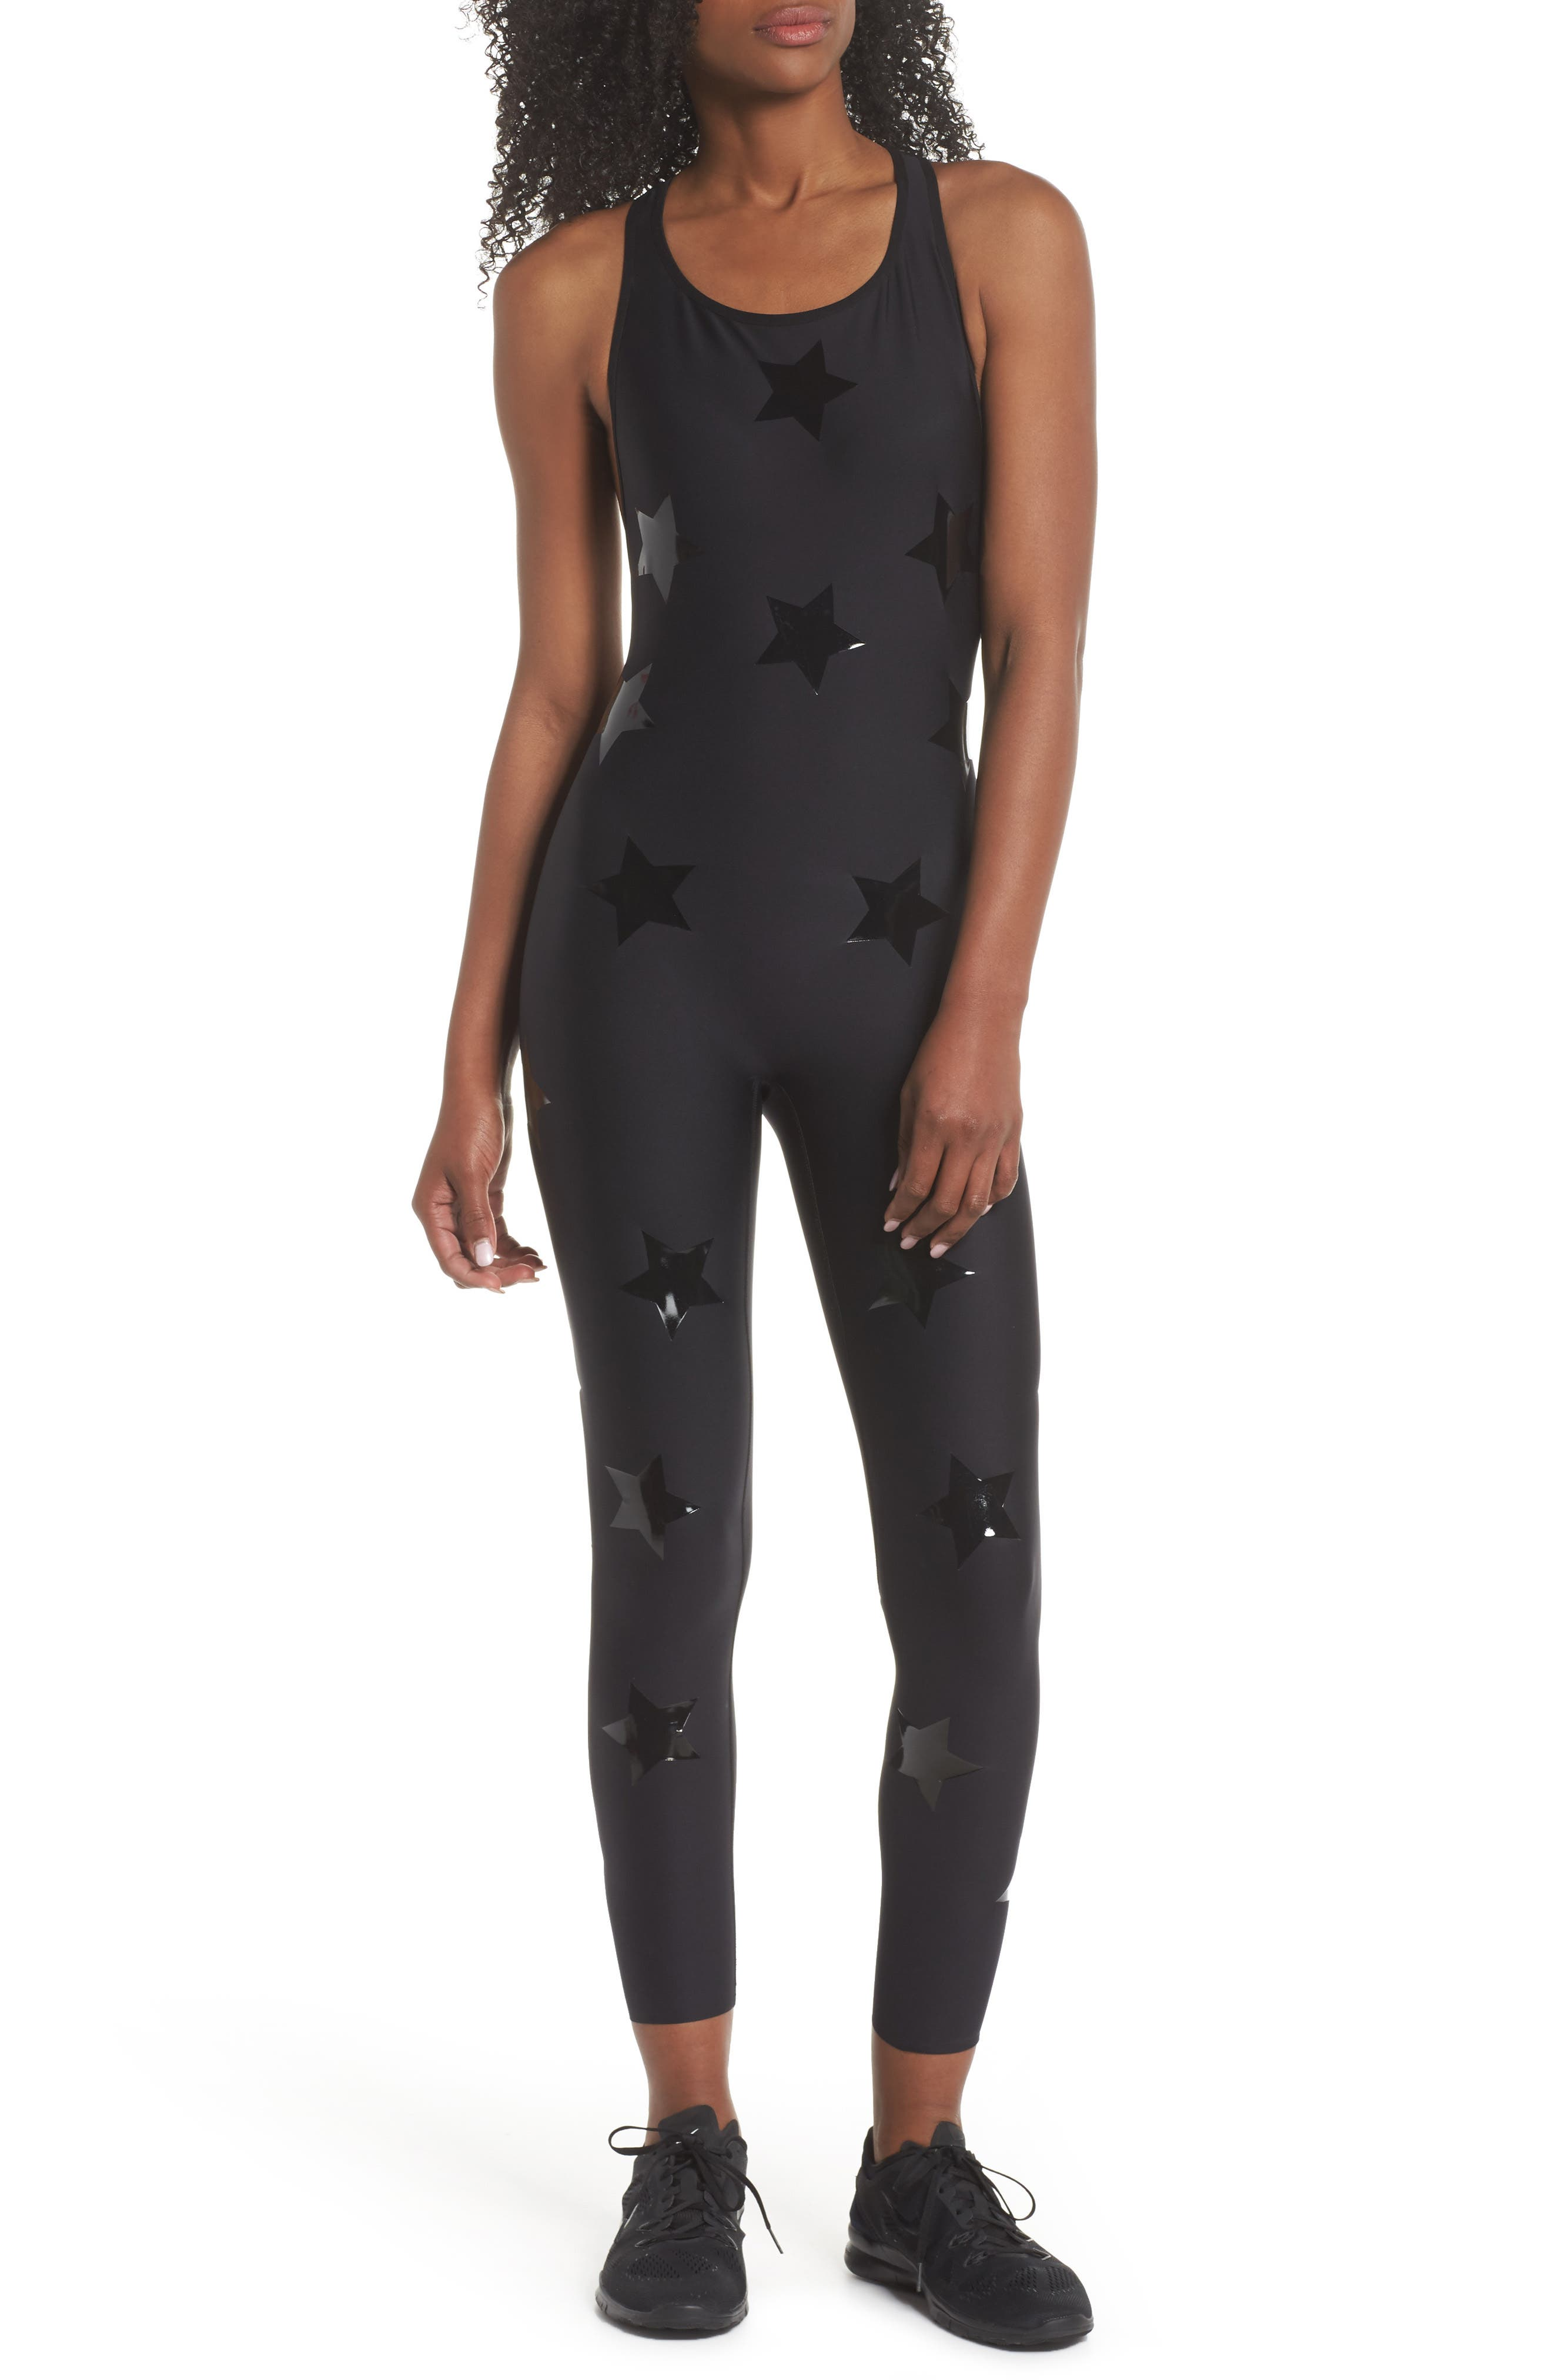 Motion Lux Knockout Unitard,                         Main,                         color, 002